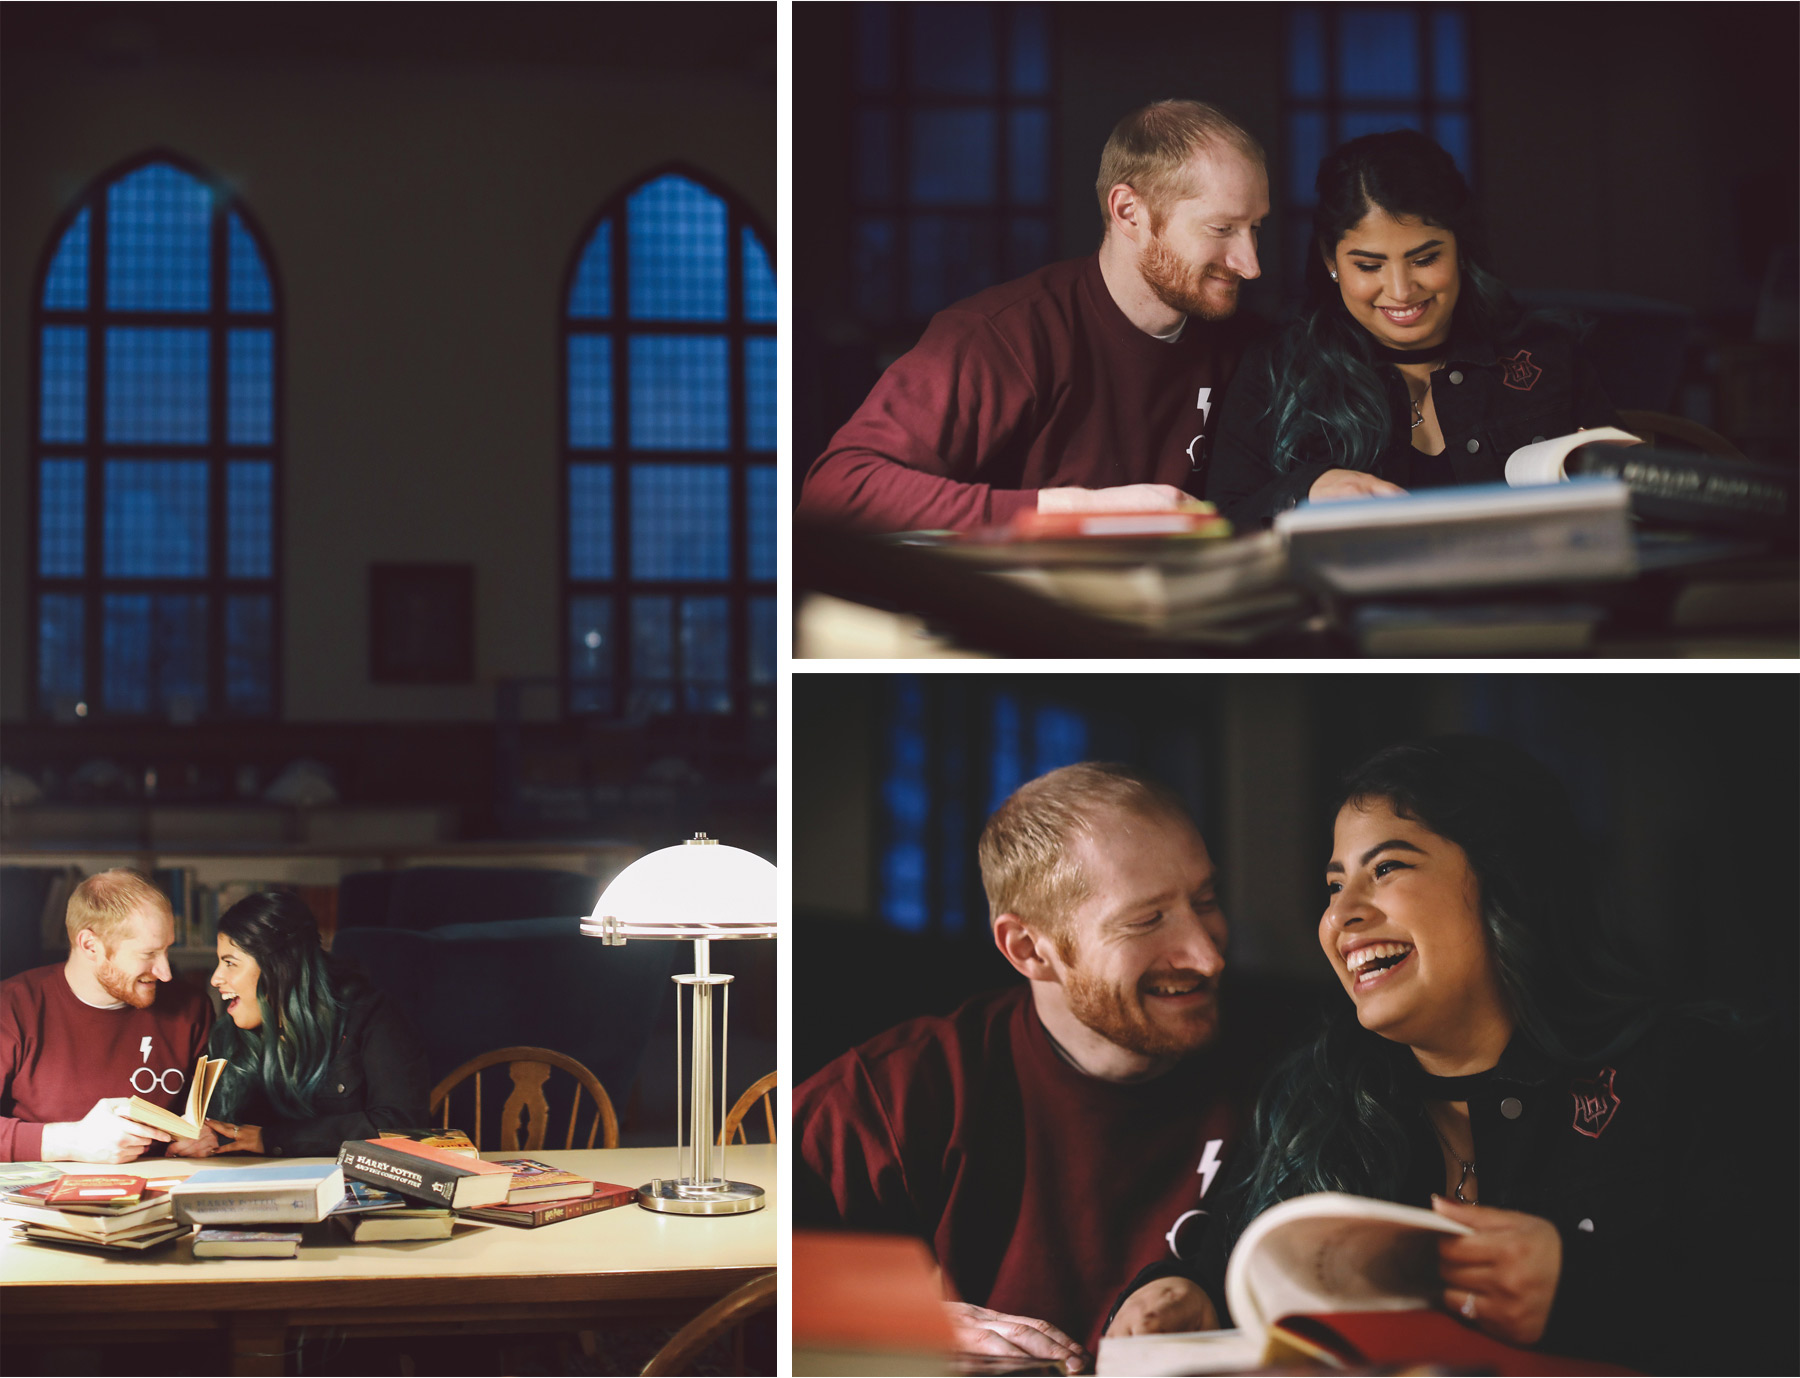 07-Harry-Potter-Themed-Engagement-Session-Minnesota-Wedding-Photography-Andrew-Vick-Books-Library-Elena-and-Doug.jpg